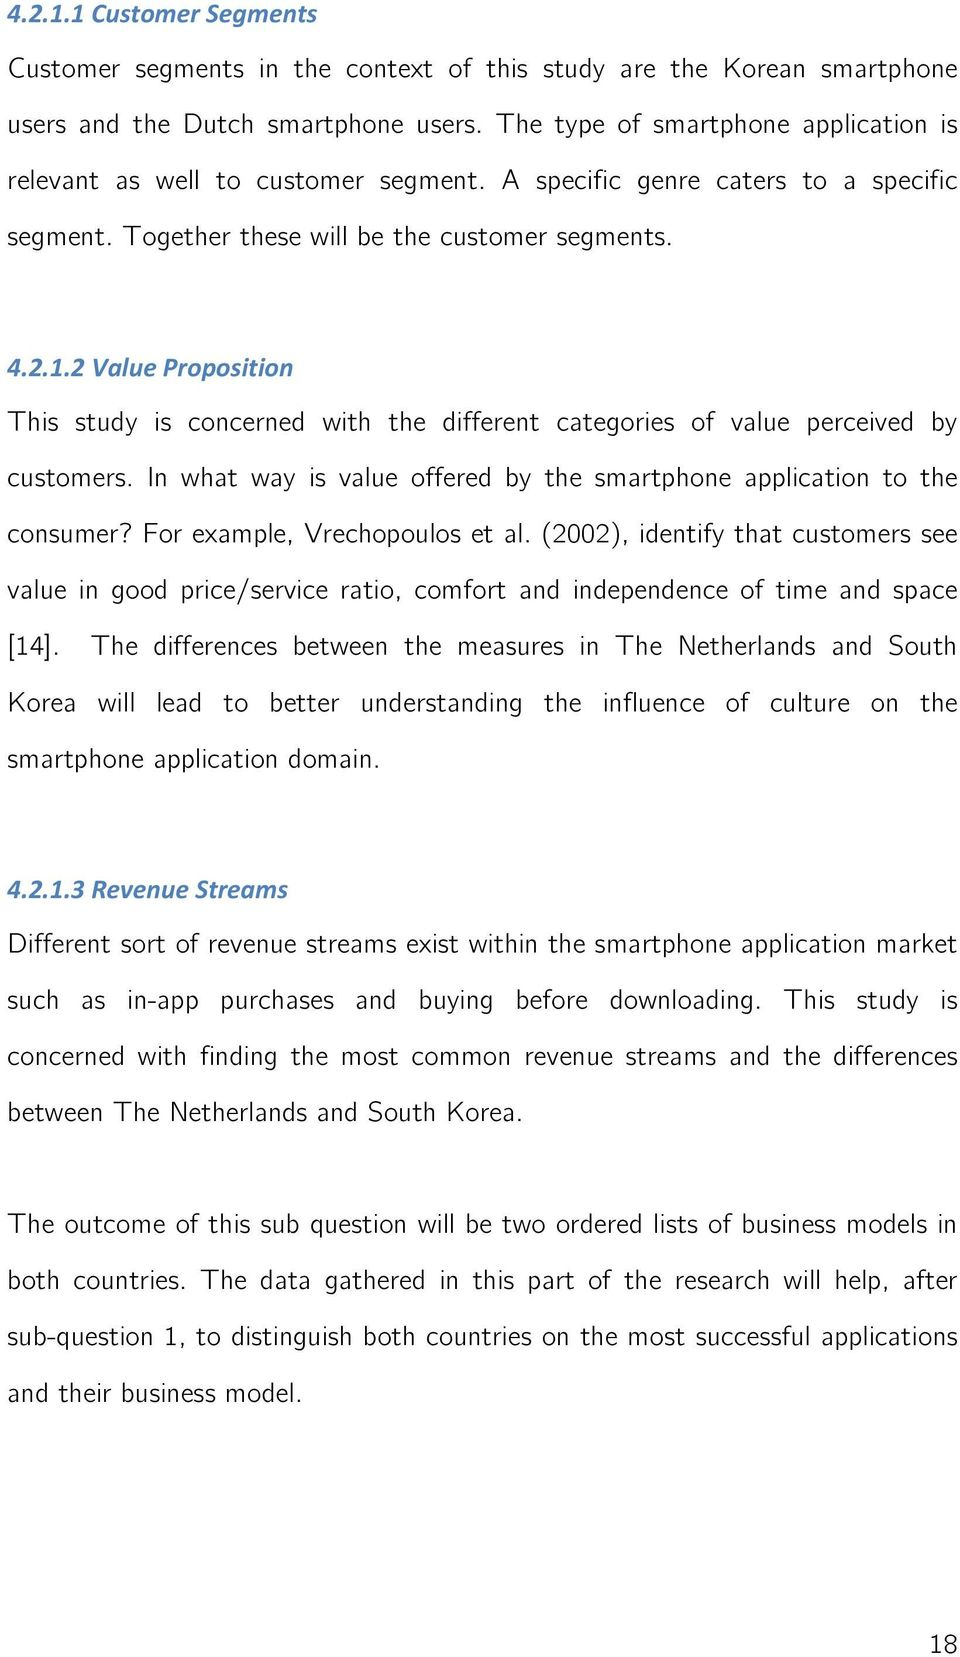 This study is concerned with the different categories of value perceived by customers. In what way is value offered by the smartphone application to the consumer? For example, Vrechopoulos et al.